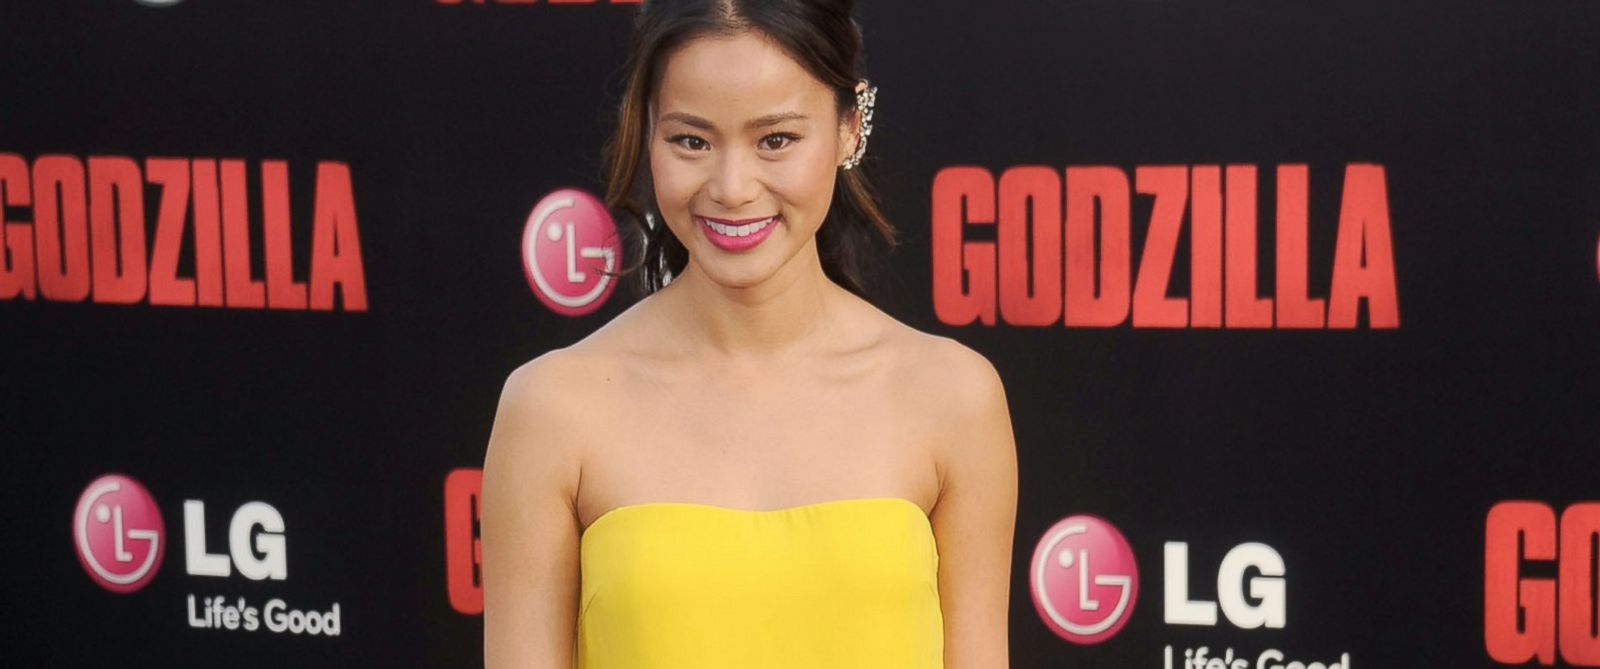 "PHOTO: Actress Jamie Chung arrives at the Los Angeles premiere of ""Godzilla"" at Dolby Theatre, May 8, 2014 in Hollywood, California."